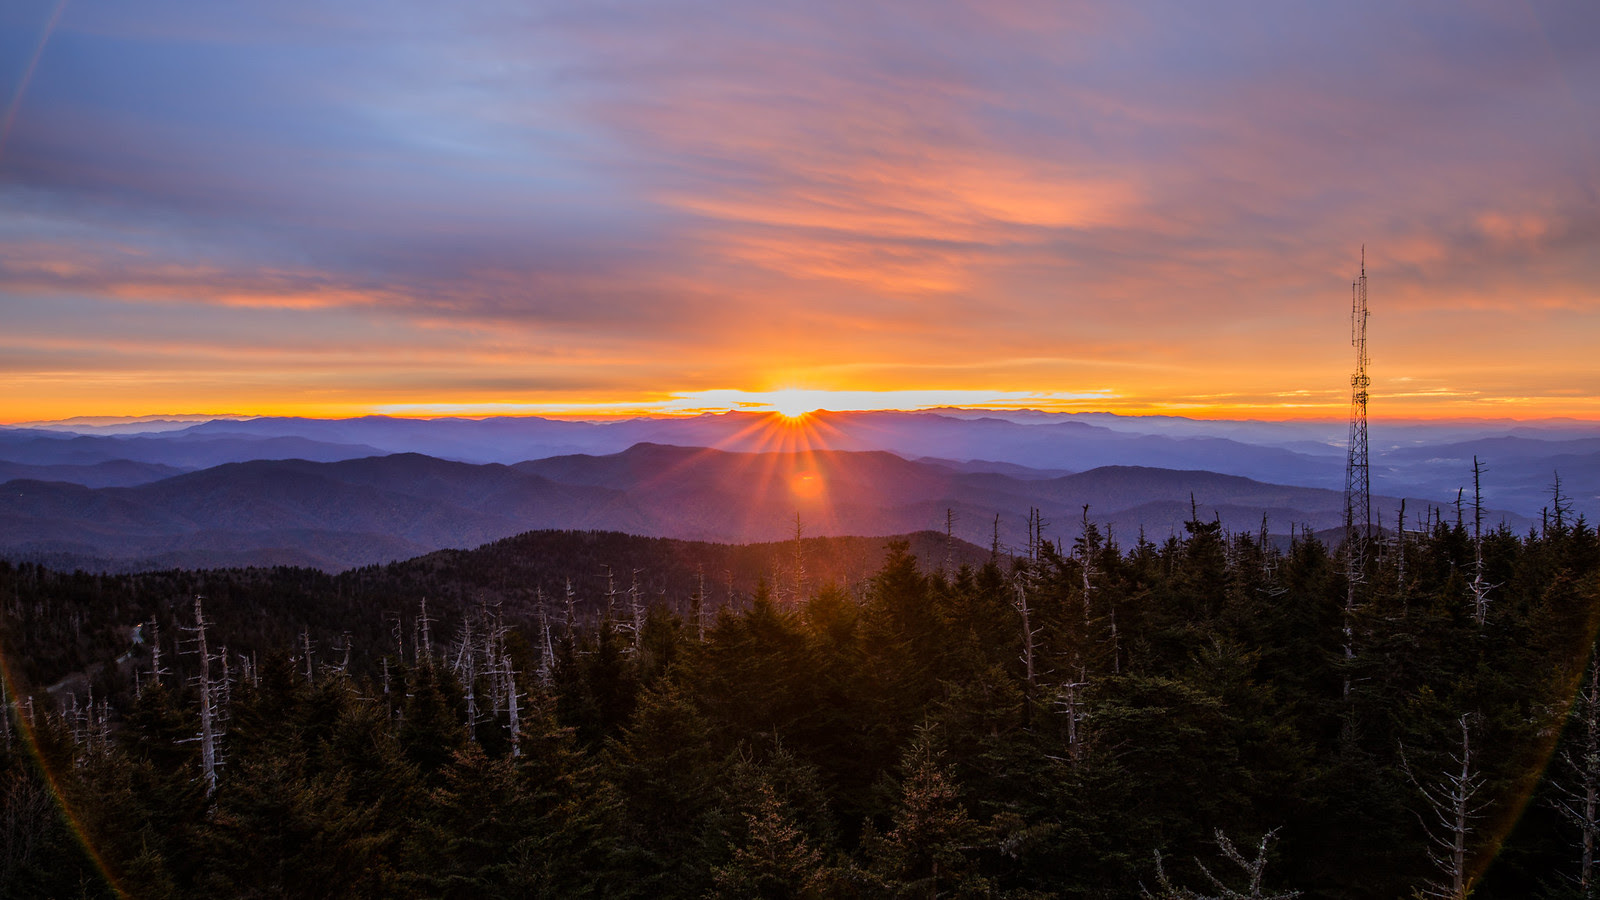 Sunrise at Great Smoky Mountains